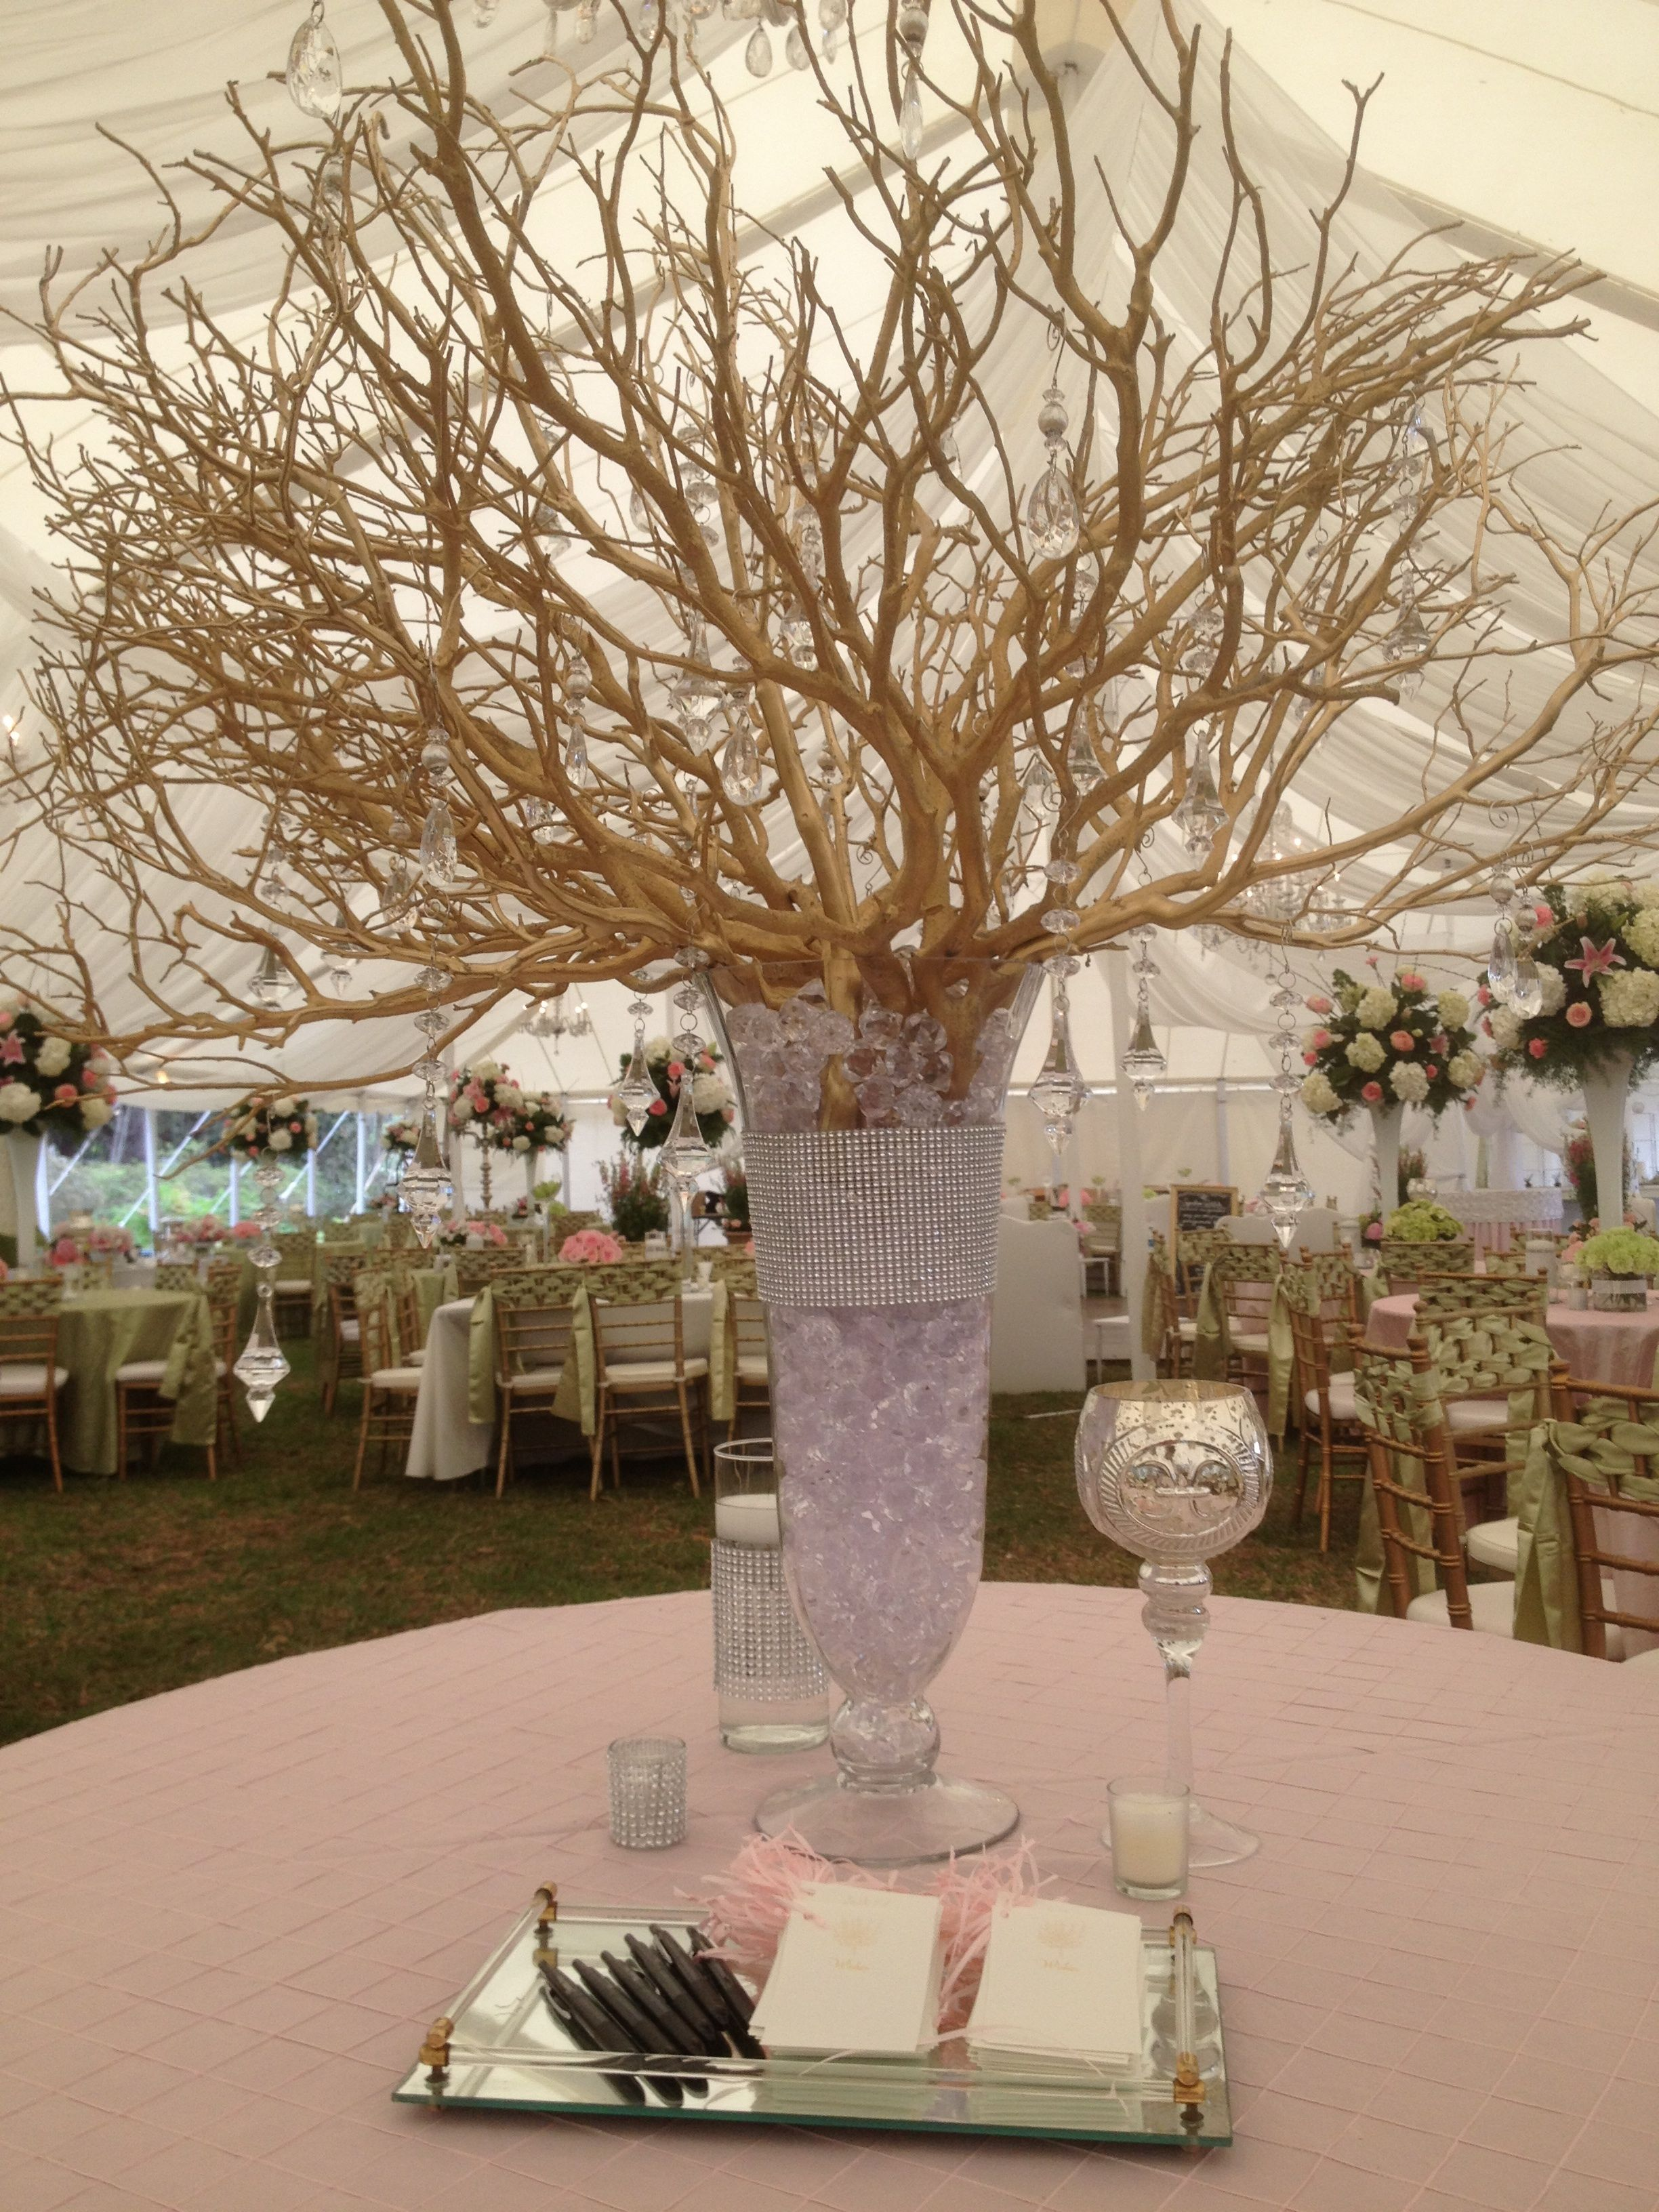 trees wedding decor wedding wedding ideas wedding decor wishing tree gold 8066